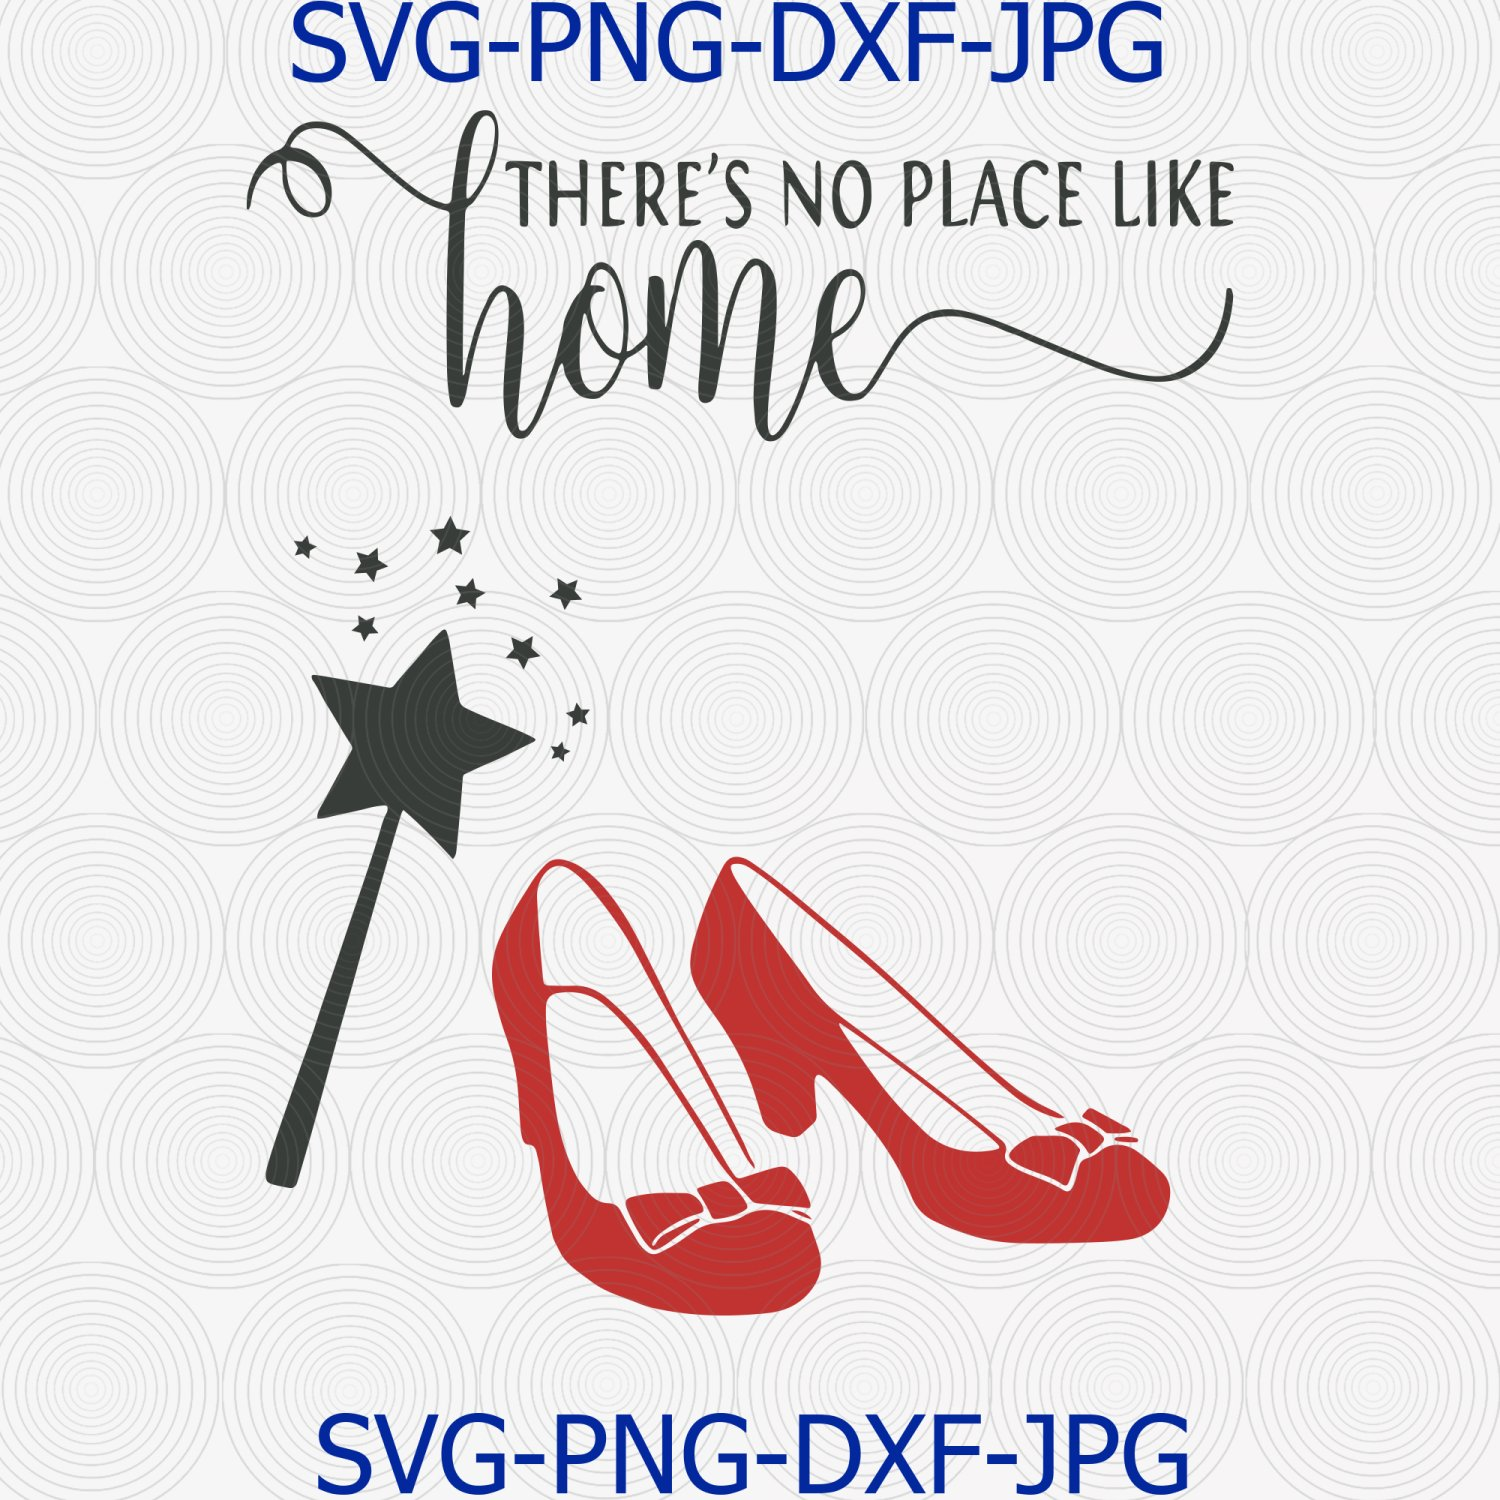 No place like home svg,ruby red slippers svg, wizard of oz svg, dorothy svg,red shoes svg